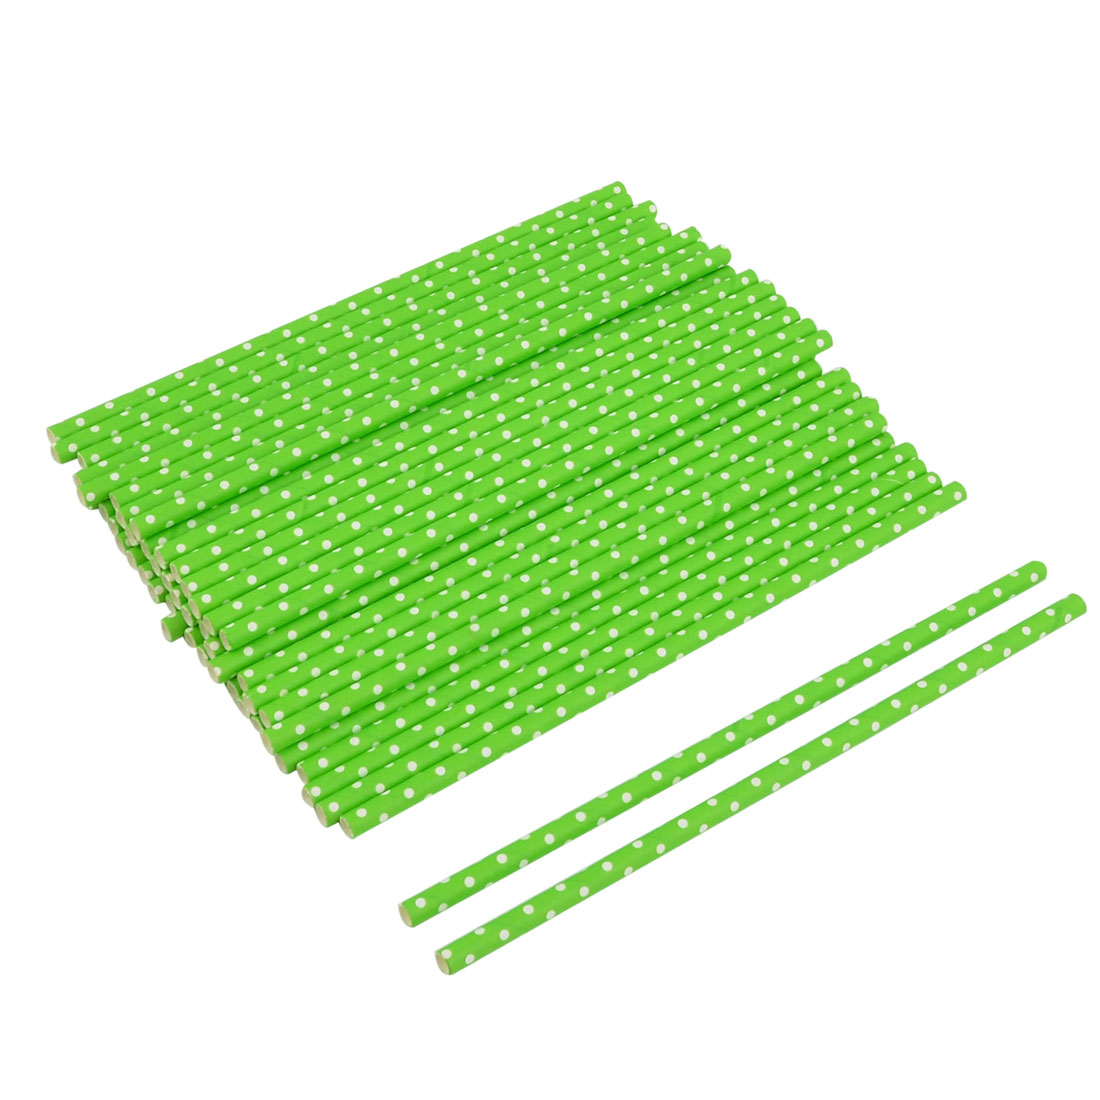 Home Party Paper Dot Print Juice Water Drinking Disposable Straws Green 50 Pcs